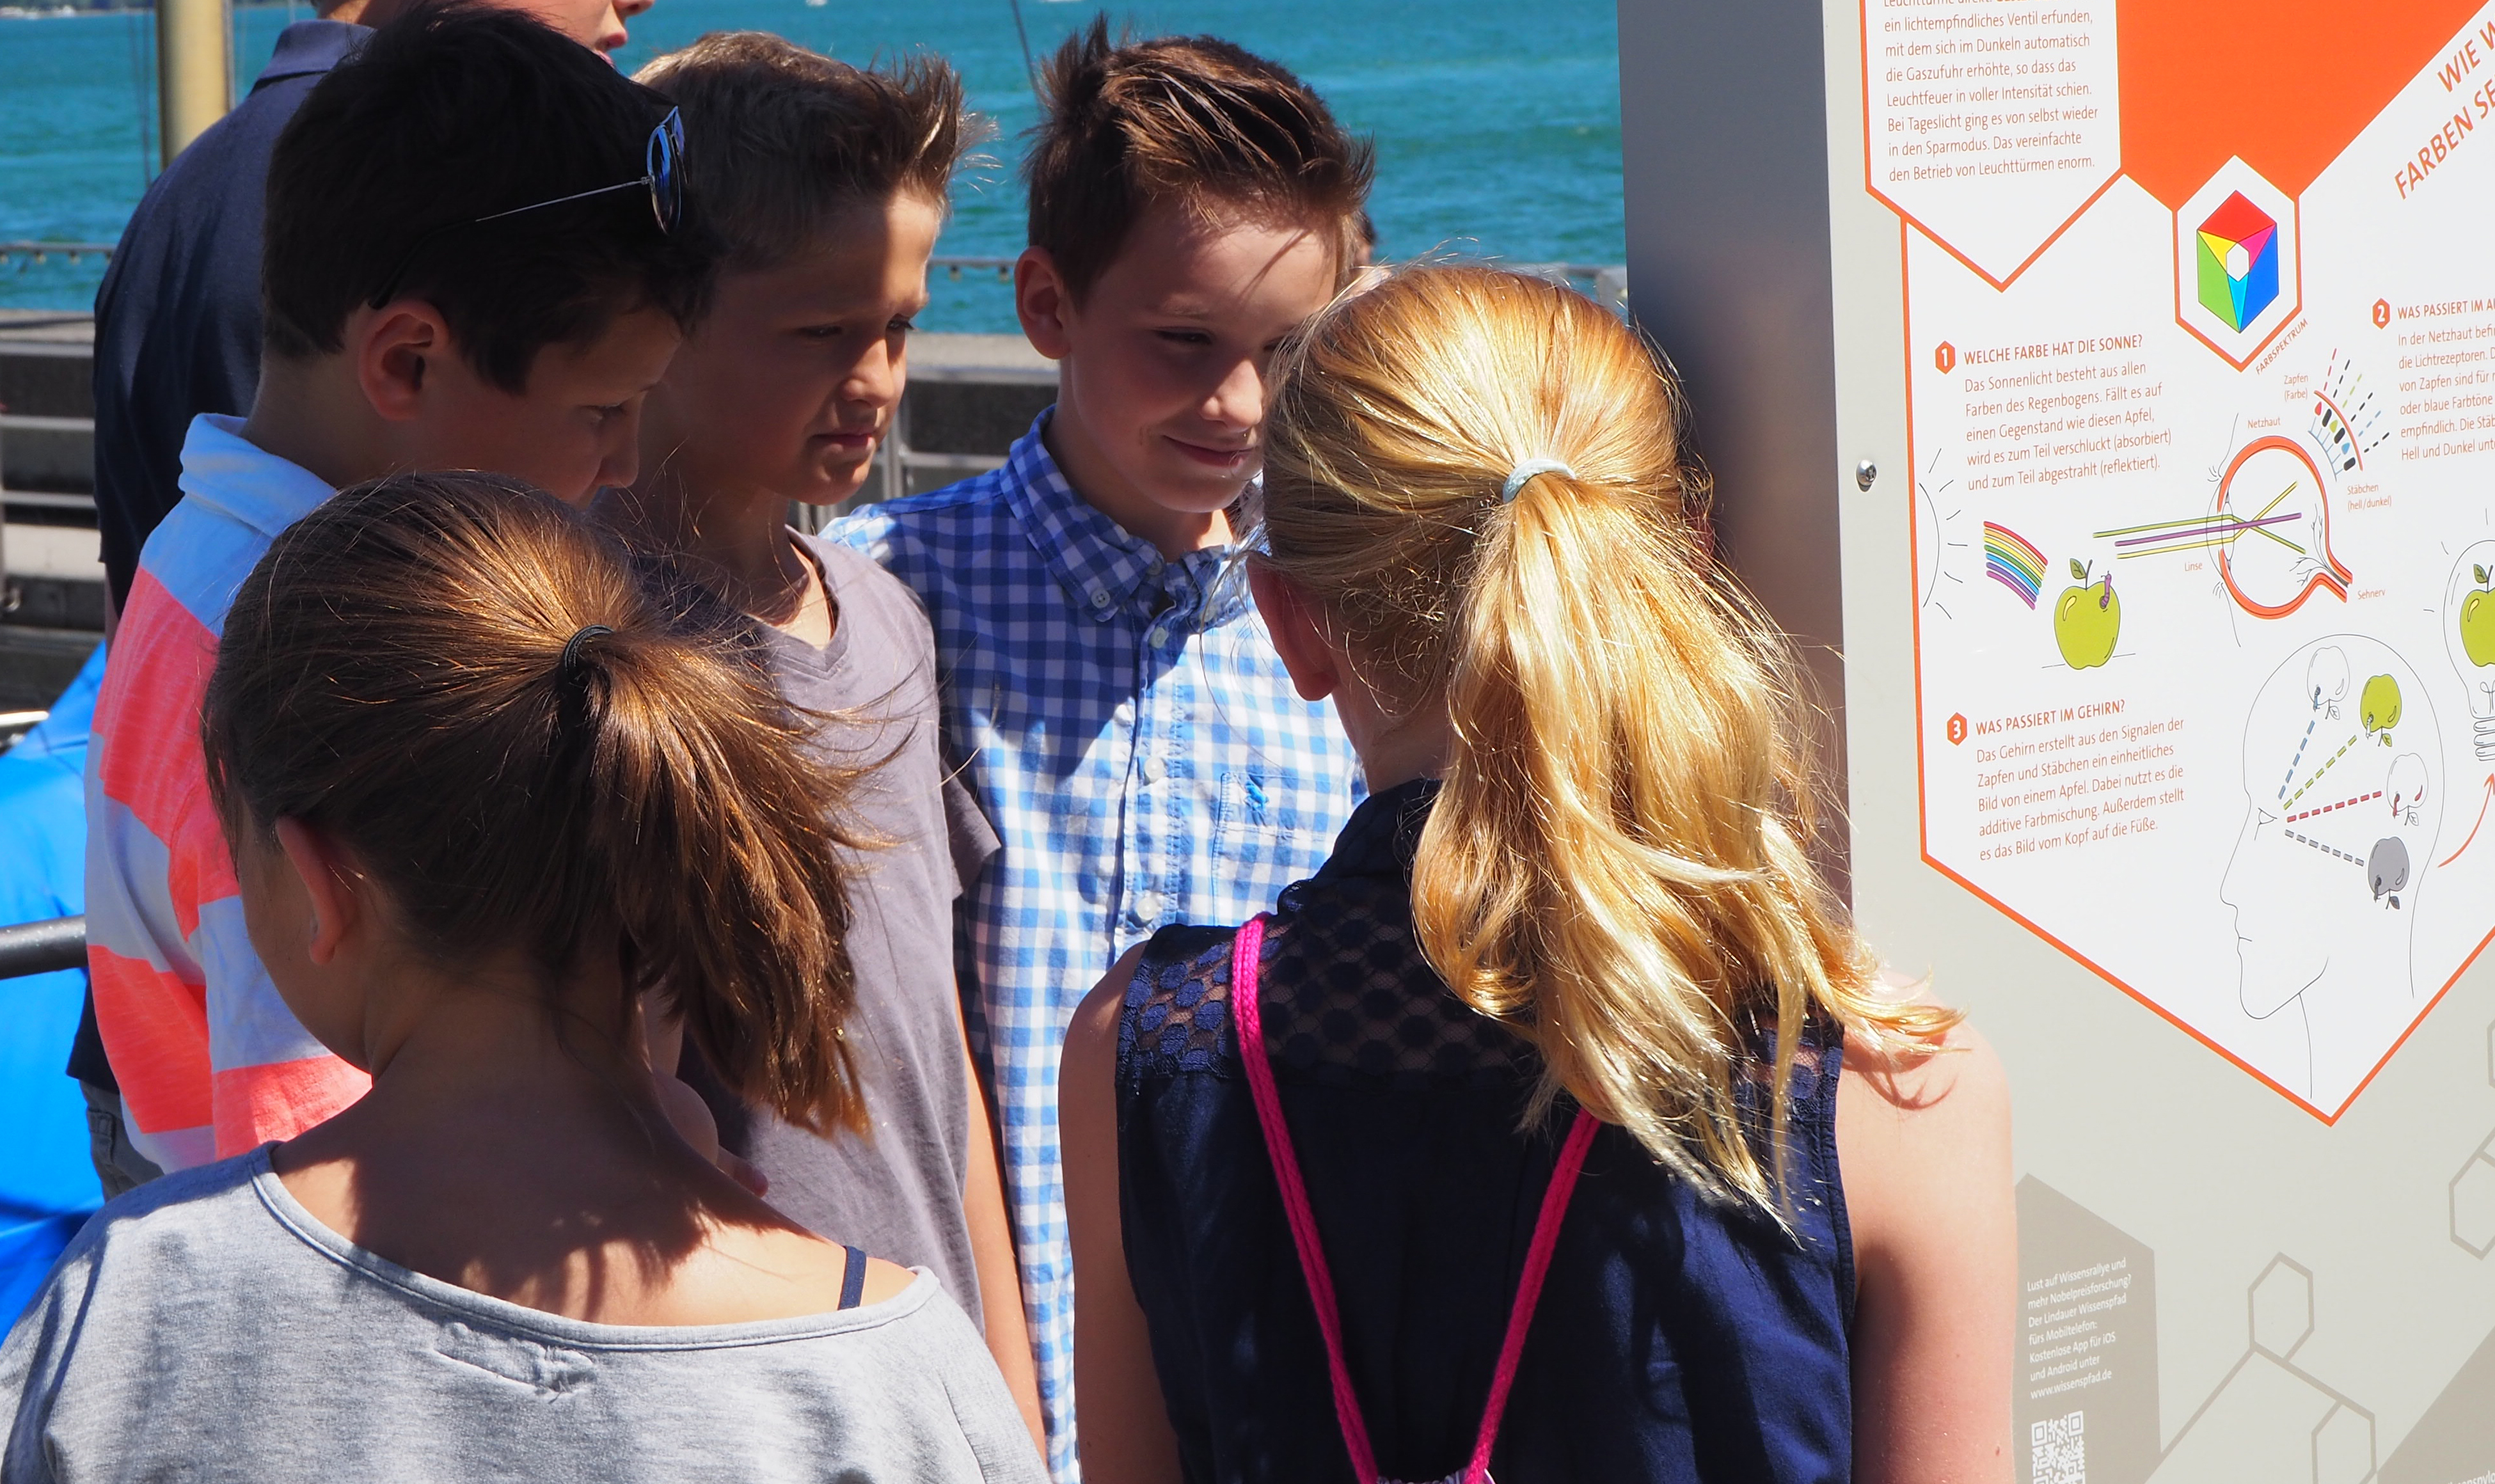 Pupils exploring a knowledge pylon. Picture/Credit: Lindau Nobel Laureate Meetings